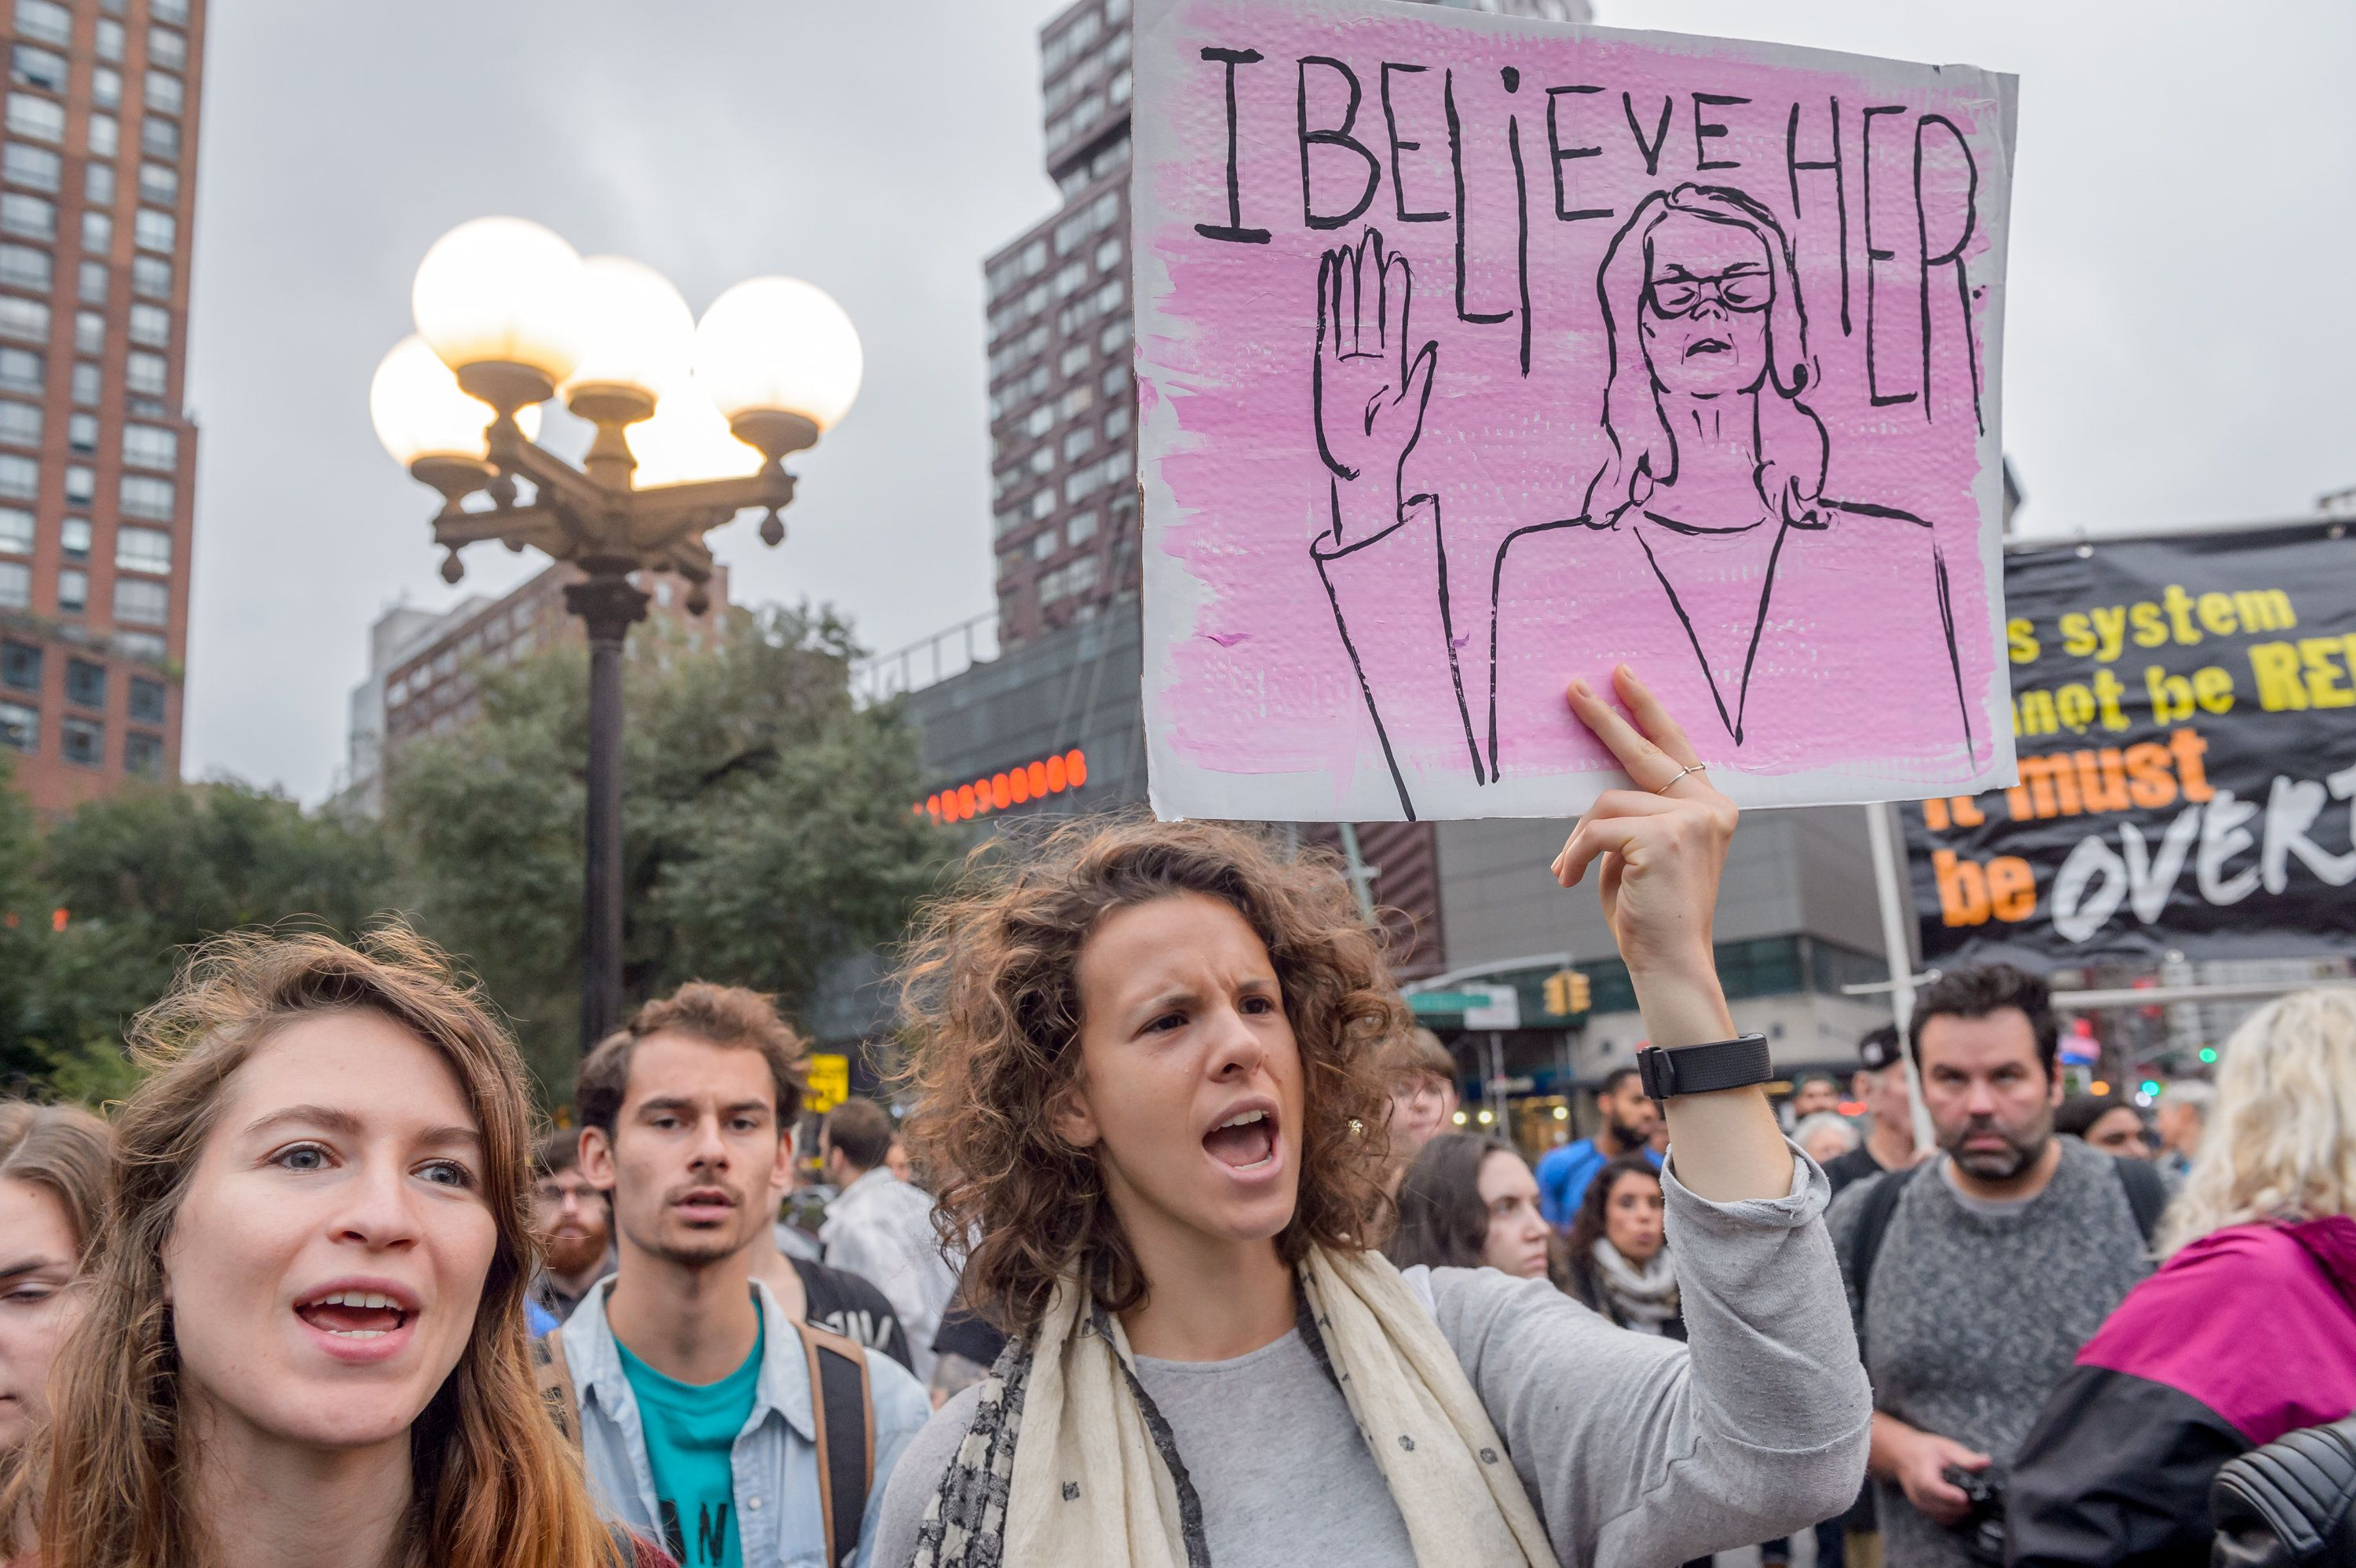 UNION SQUARE, NEW YORK, UNITED STATES - 2018/10/06: Hundreds of new Yorkers took to the streets on October 6, 2018 after the Senate voted on Brett Kavanaughs confirmation to the Supreme Court, to express rage and refusal to consent to the US Senate appointee to the Supreme Court. (Photo by Erik McGregor/Pacific Press/LightRocket via Getty Images)